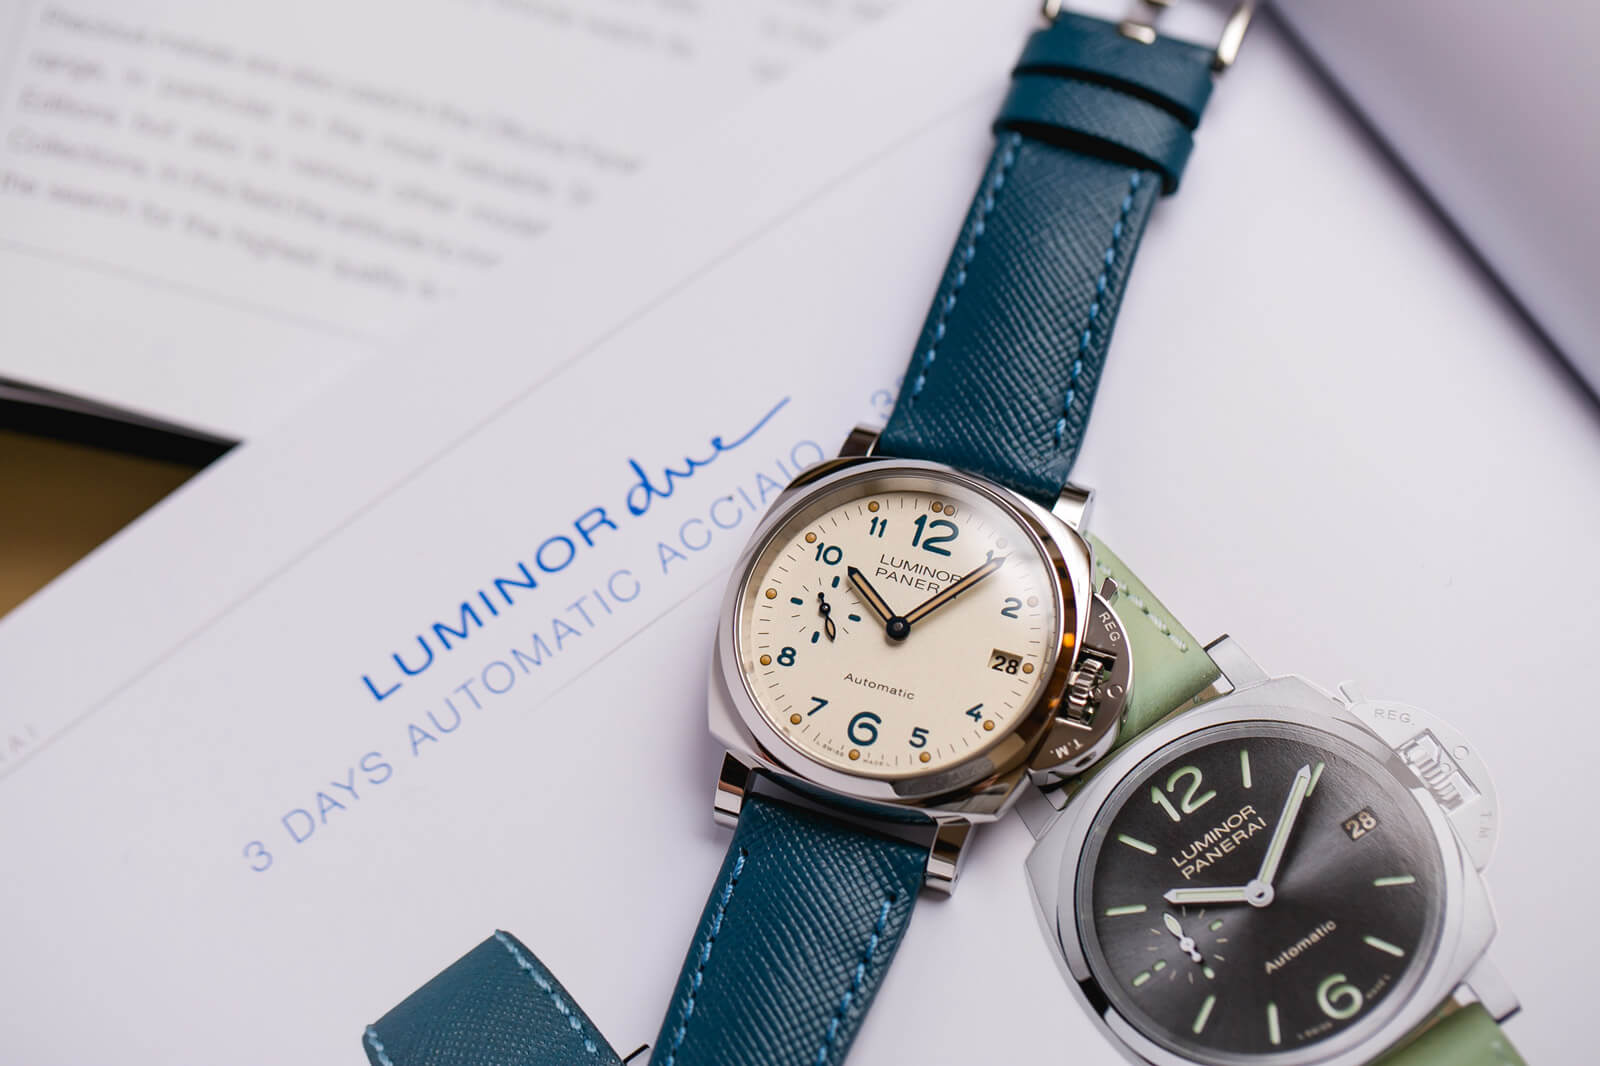 Panerai Luminor Due 38mm – PAM00903